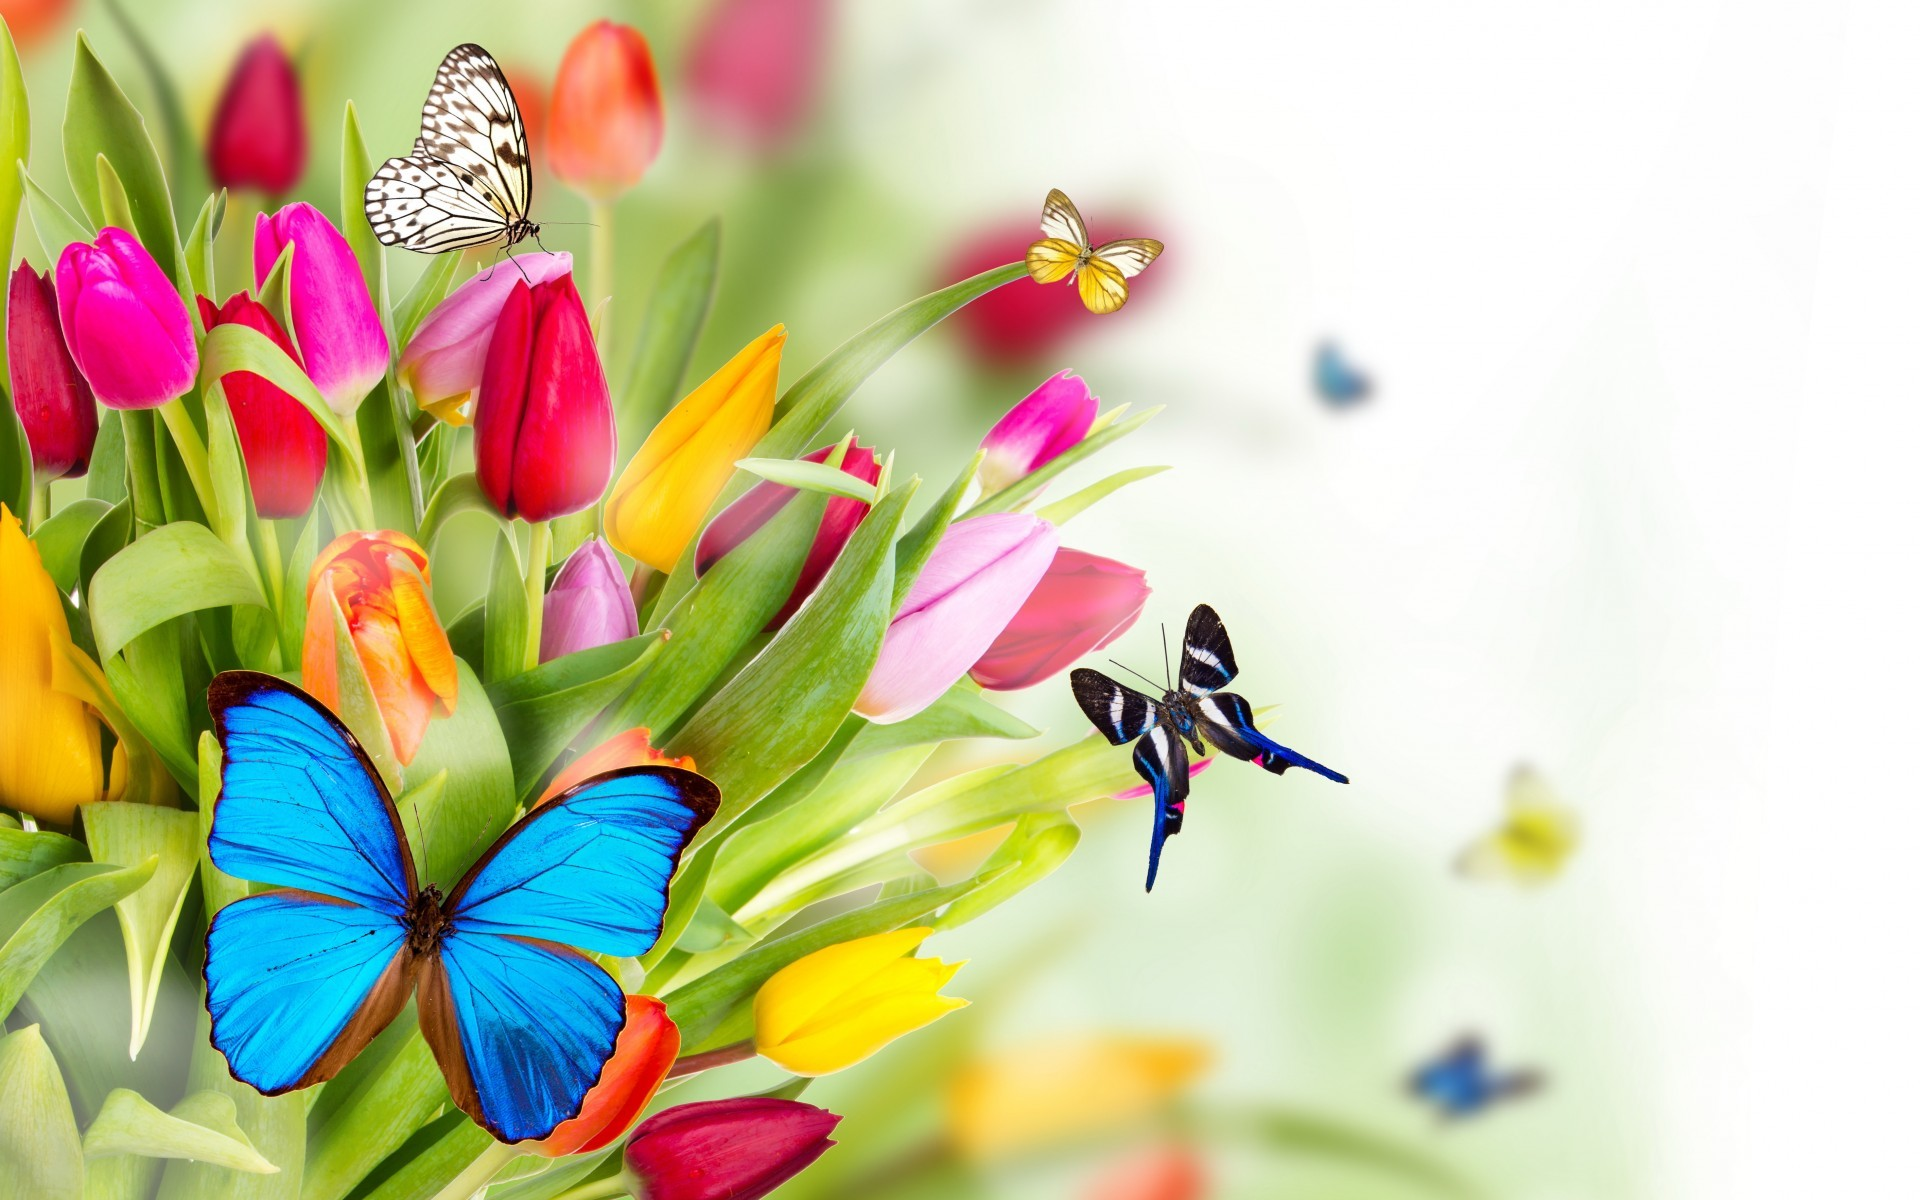 Lovely Cute Girl Hd Wallpaper Springtime Animals And Flowers Wallpaper 67 Images